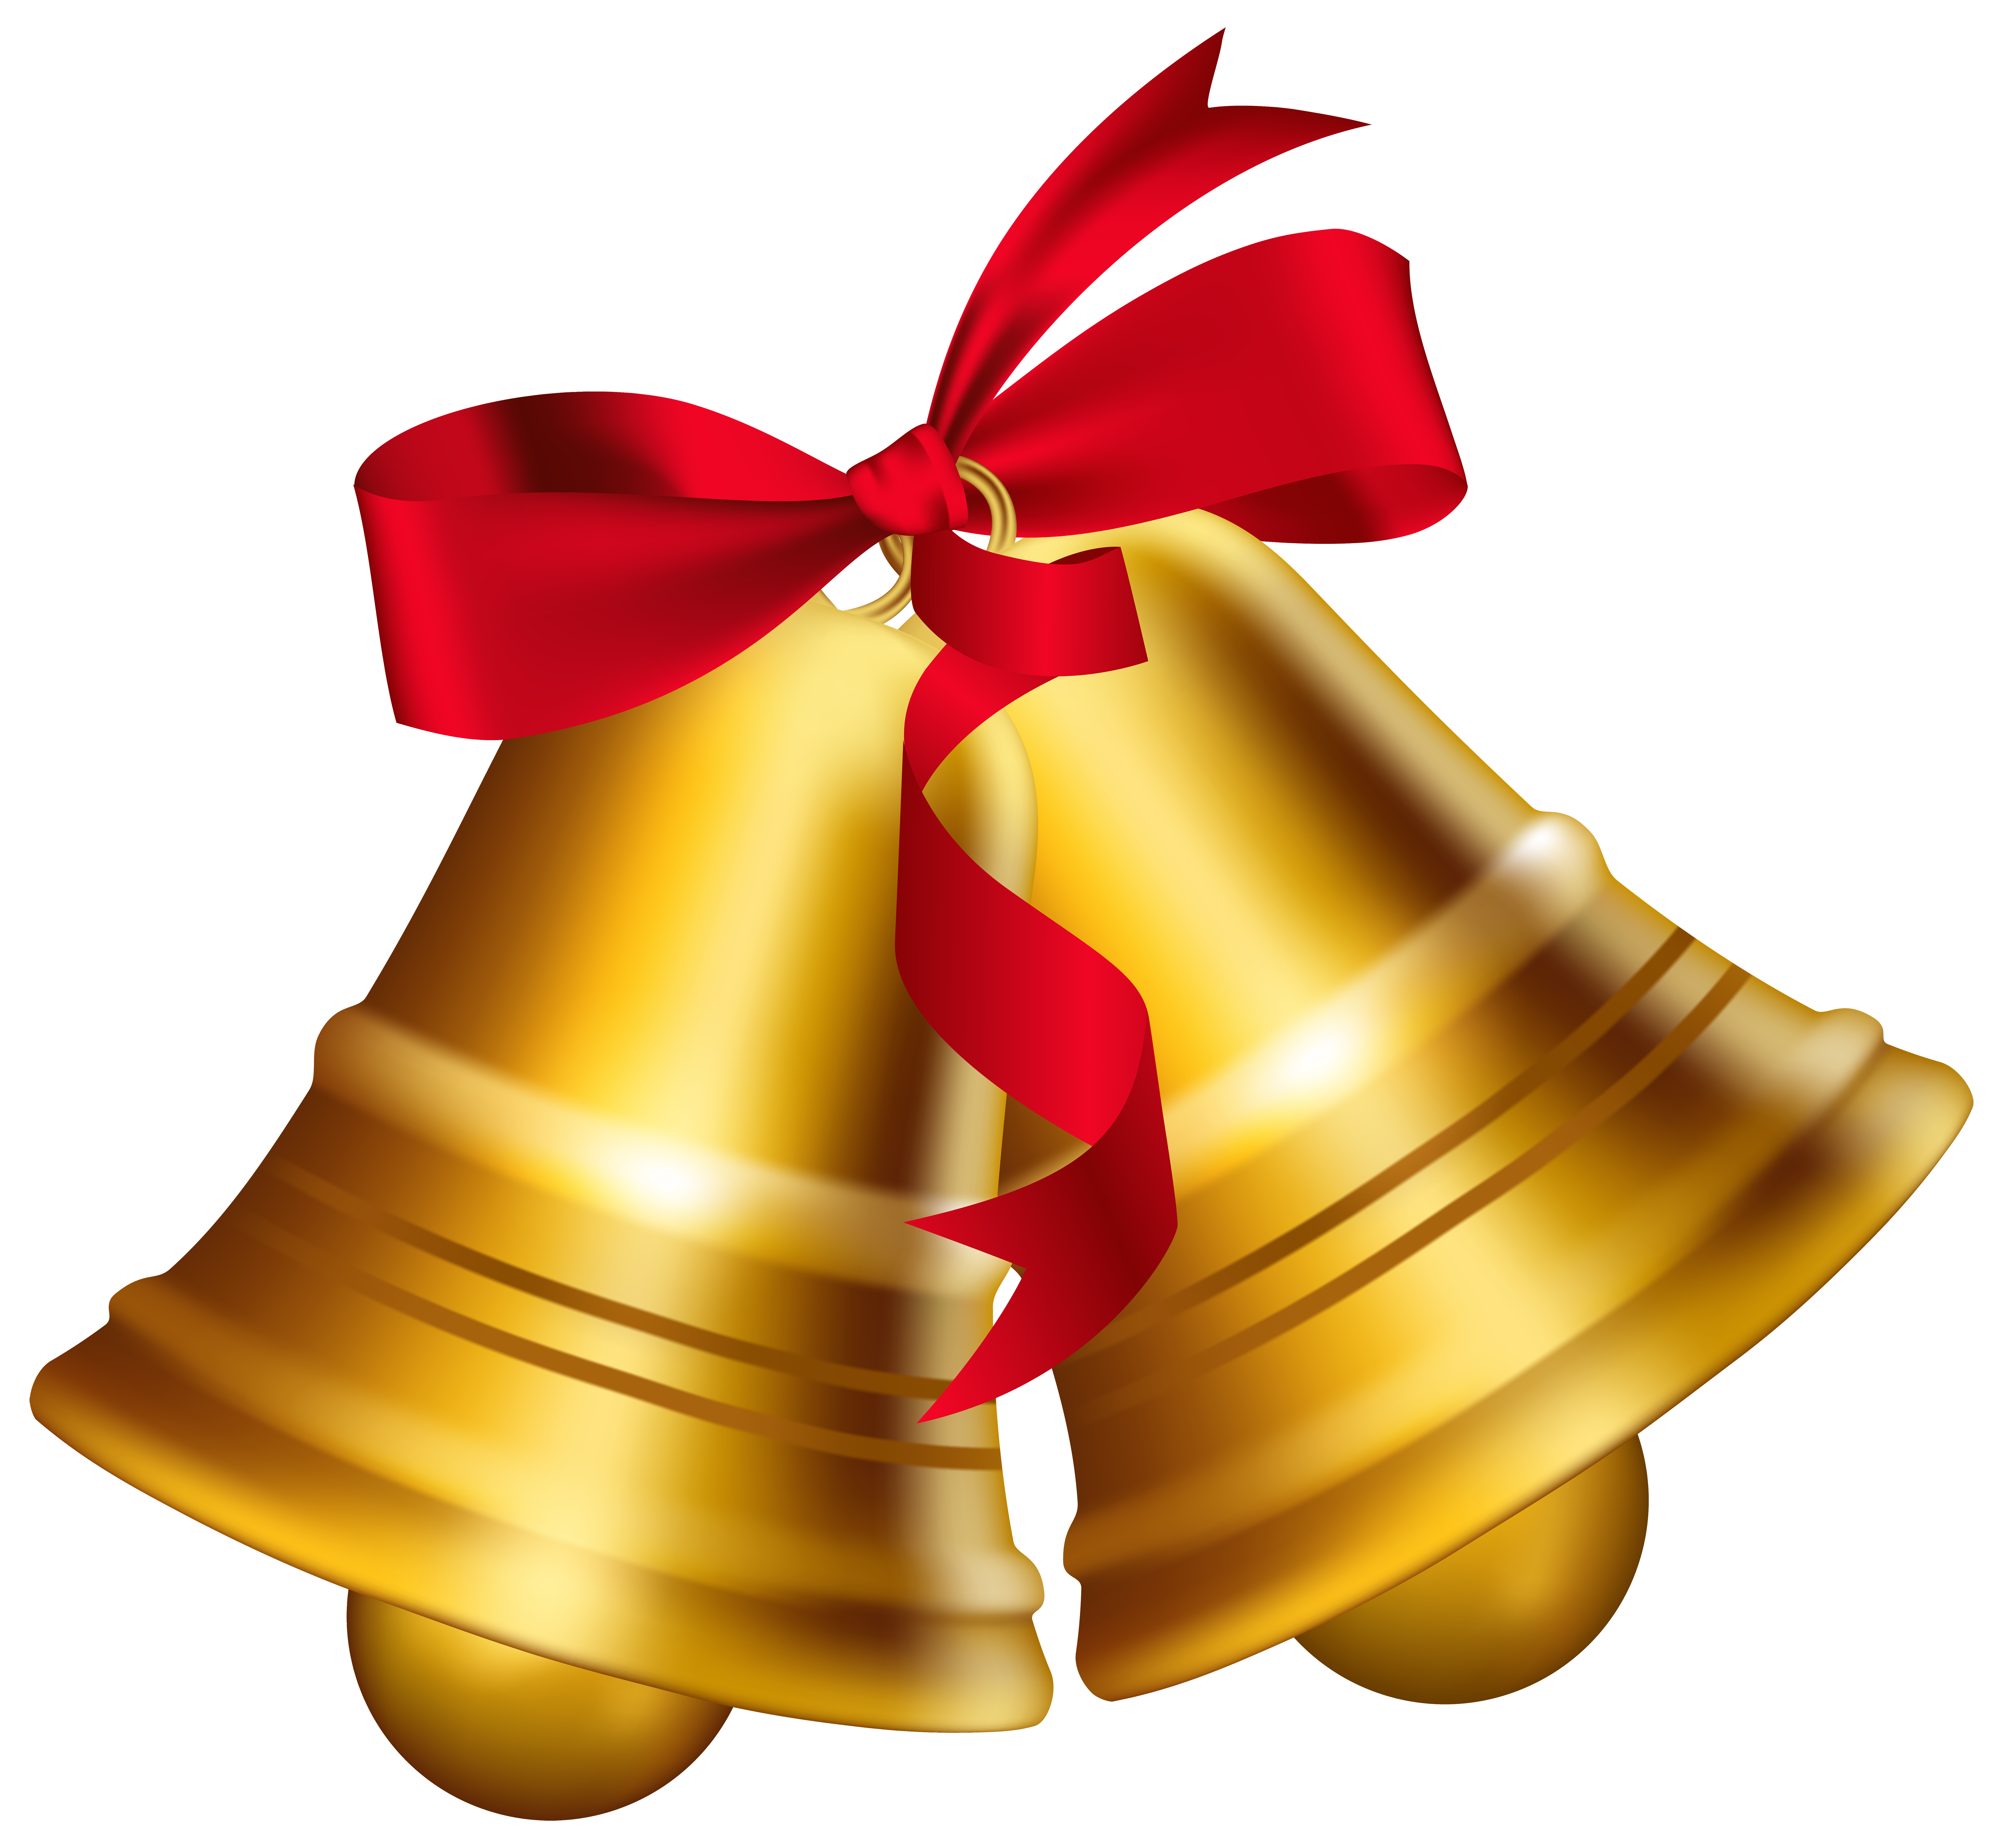 Christmas bell clipart banner transparent download Christmas Bells with Bow PNG Clip Art Image | Gallery Yopriceville ... banner transparent download